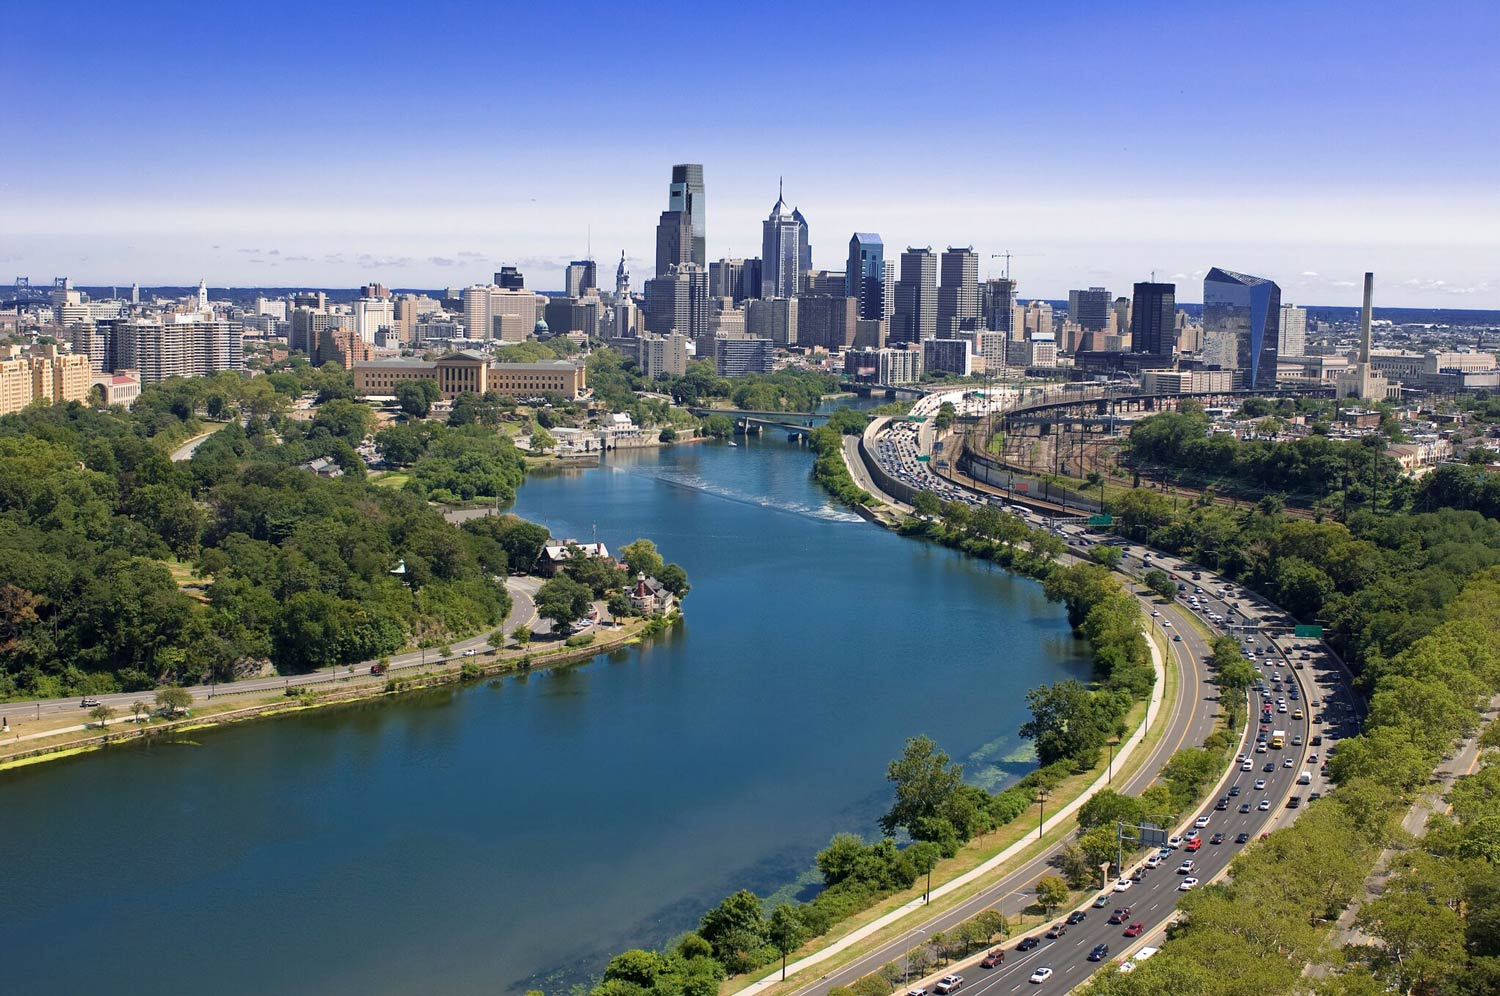 The American Society of Landscape Architects is currently accepting presentation submissions for the ASLA 2018 Annual Meeting and EXPO, which will be held October 19-22, 2018 in Philadelphia.